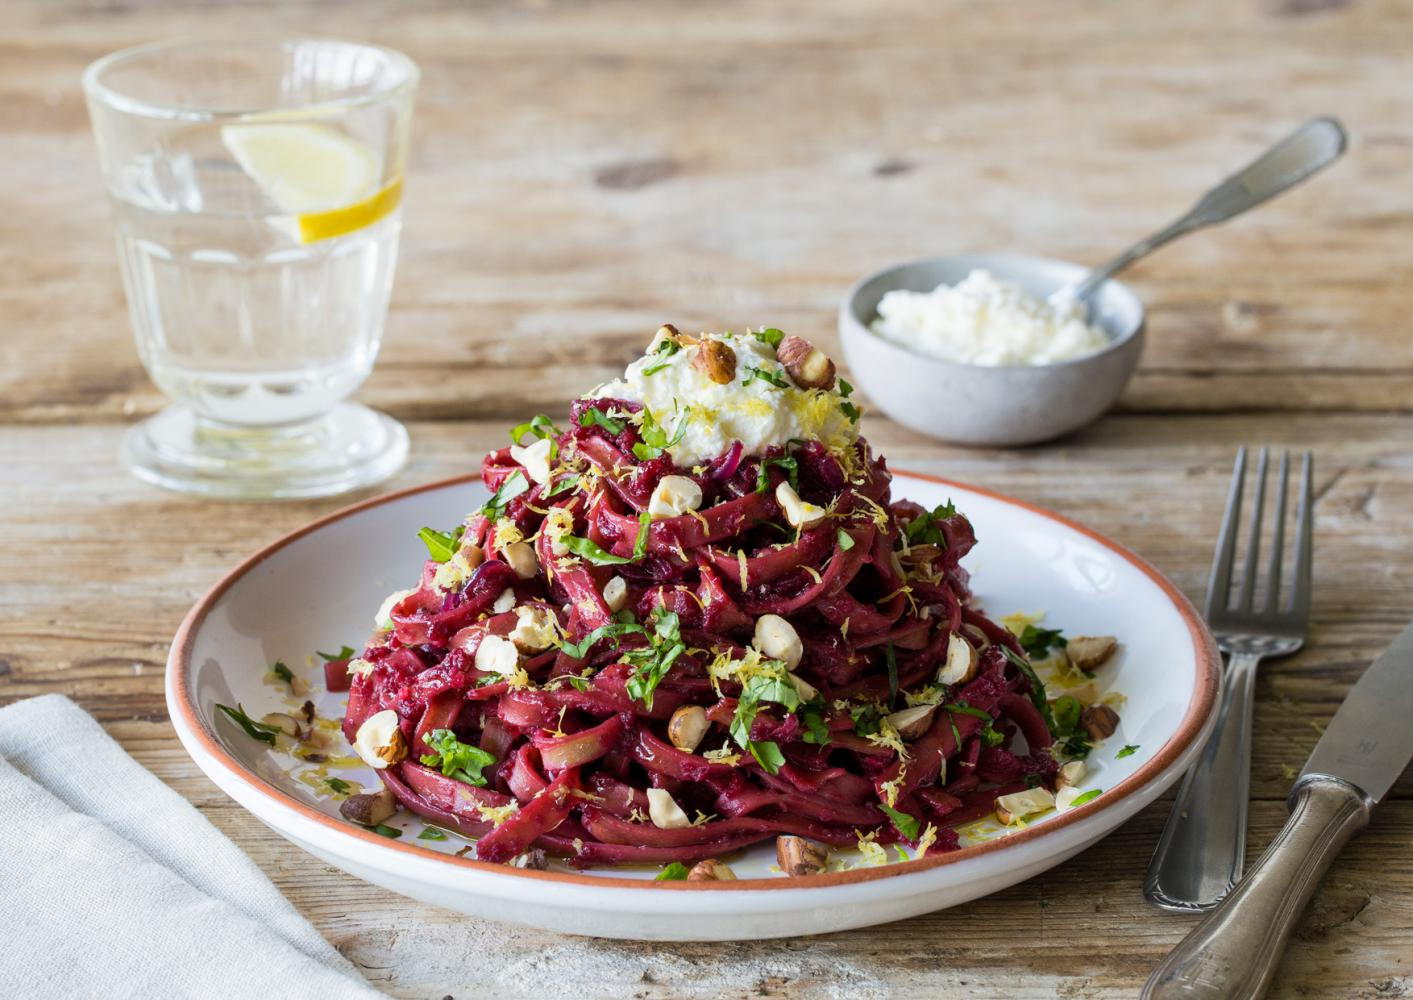 CRUSHED_BEETS_&_WHOLE_WHEAT_SPAGHETTI_WITH_LEMONY_RICOTTA,_HAZELNUTS_&_BASIL_OIL